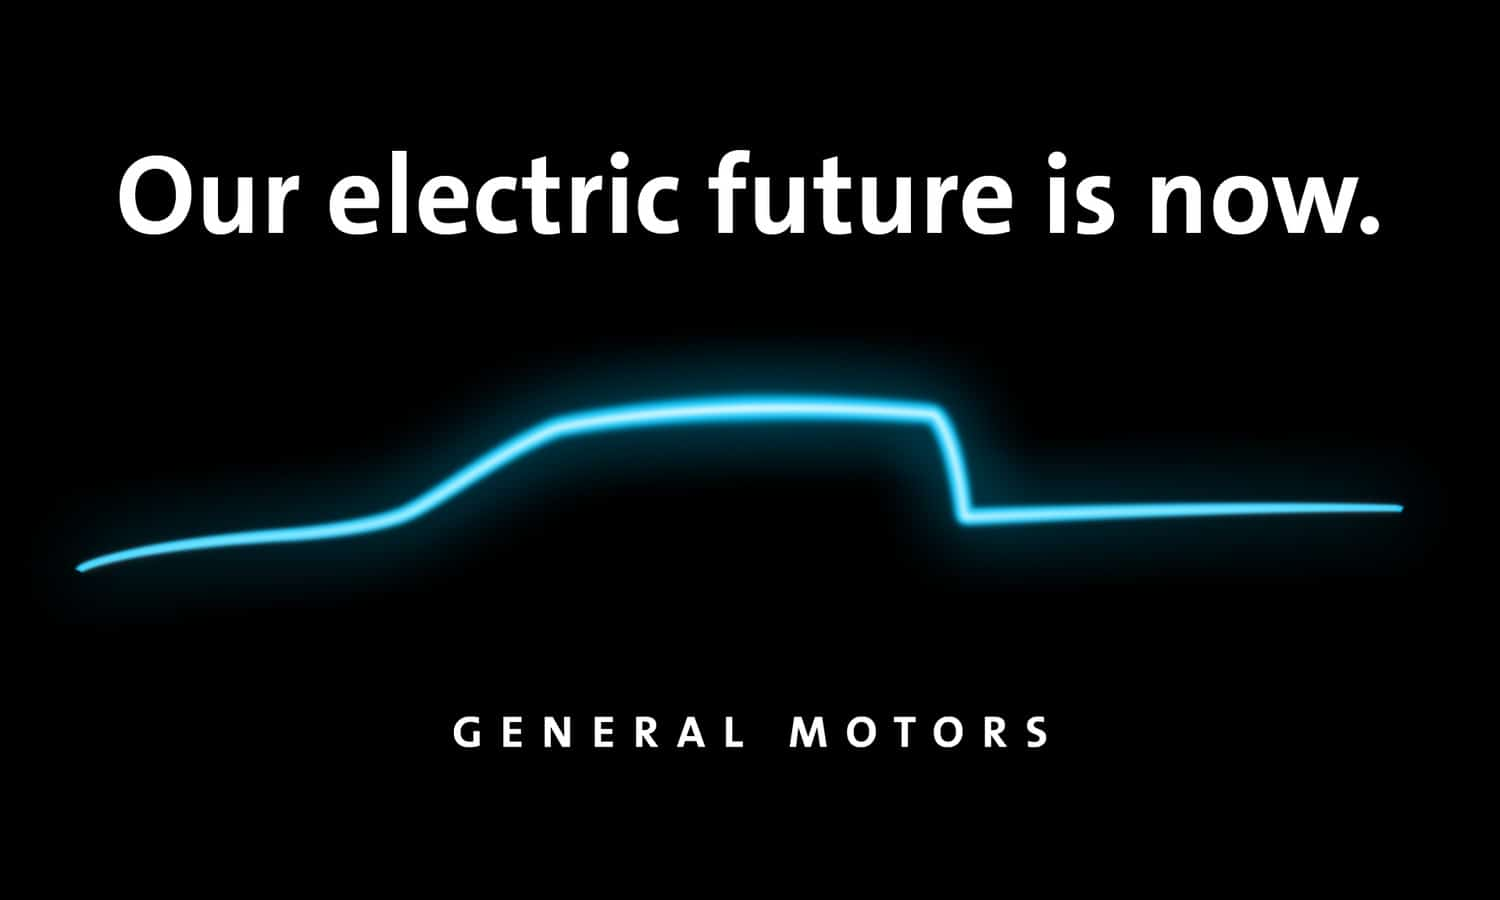 General Motors Detroit-Hamtramck Electric teaser